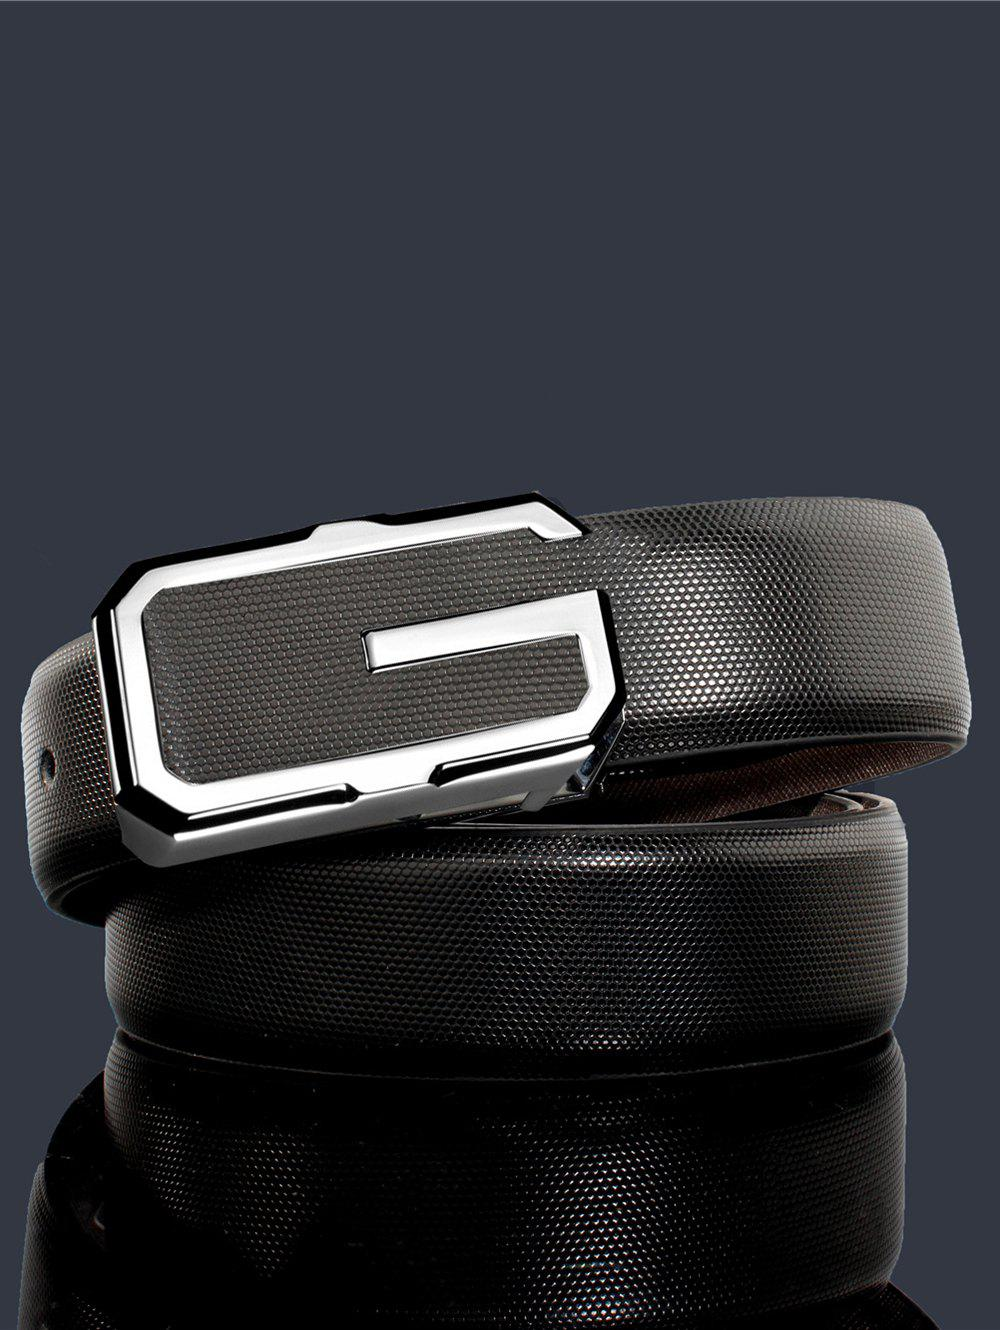 3D G Shape Metal Buckle Decorated Automatic Buckle Wide Belt - WHITE/BLACK/SILVER 110CM